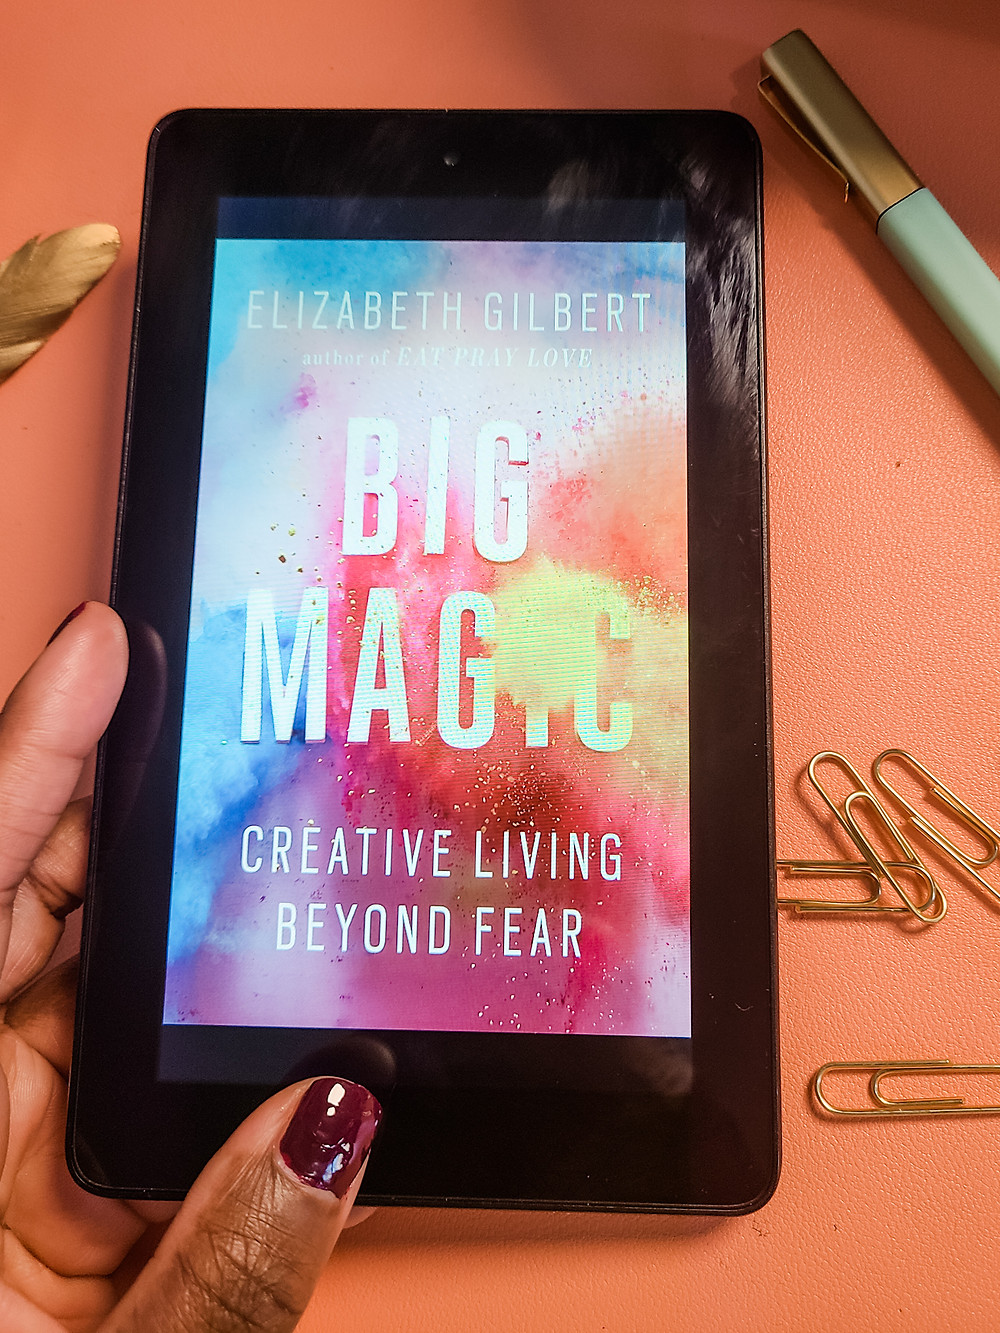 Black, Creative, and Dope. Working in home office. Shanell Tyus. Black xennial mom. Millennial mom. Naturalista. Curly-haired mom. Taperd cut. Cozy home office. Work from home mom. Mompreneur. Finding your passion. Black woman's hand holding digital copy of Big Magic by Elizabeth Gilbert.